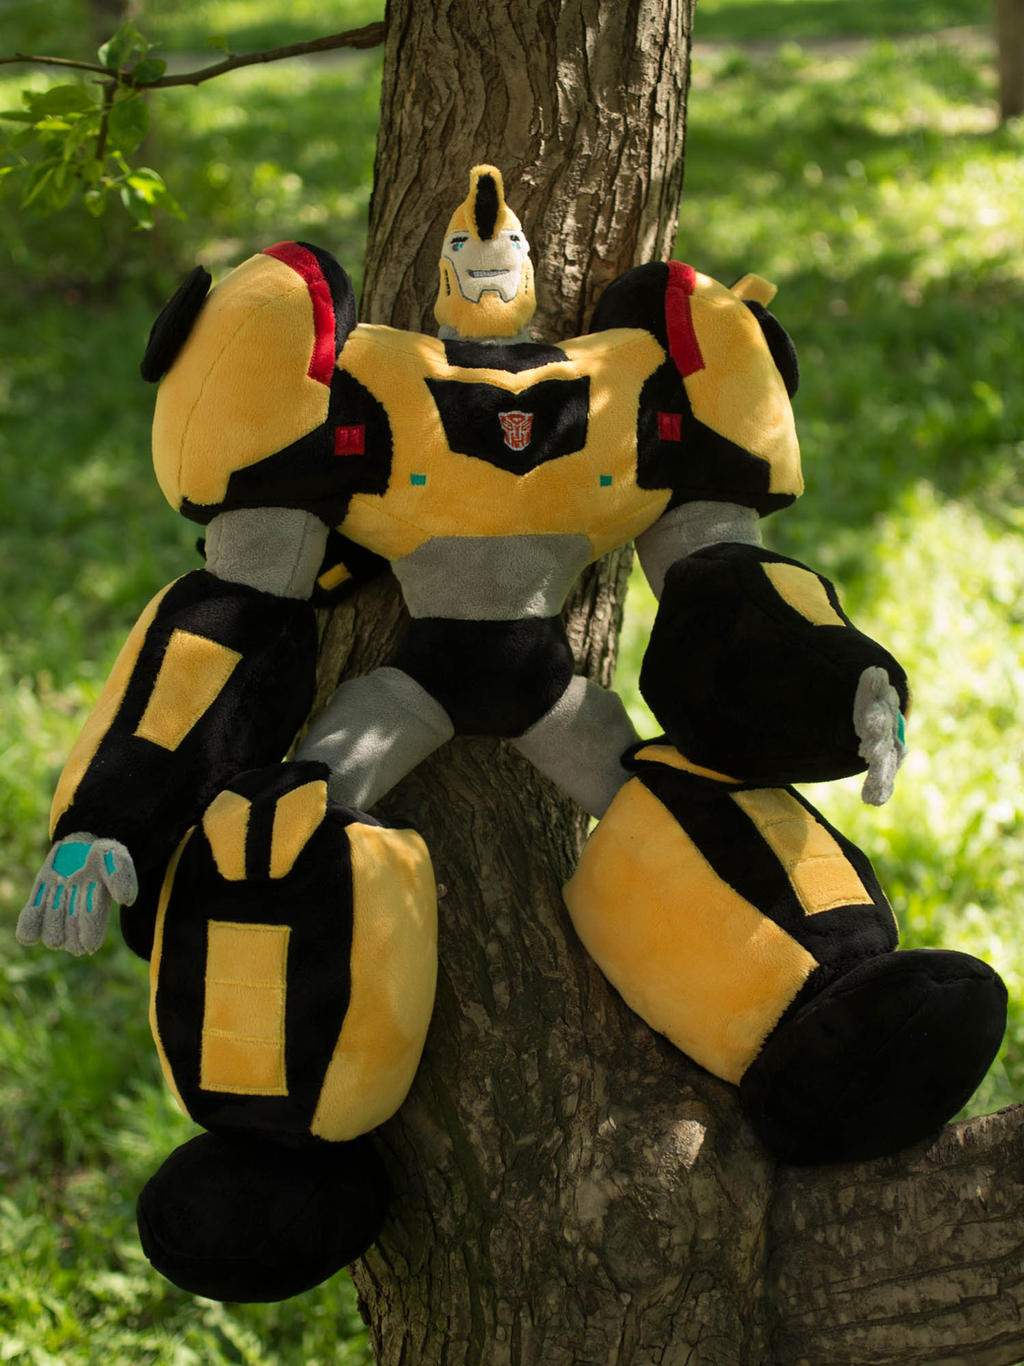 Transformer Bumblebee Plush Toy 25 inches by Valmiiki on